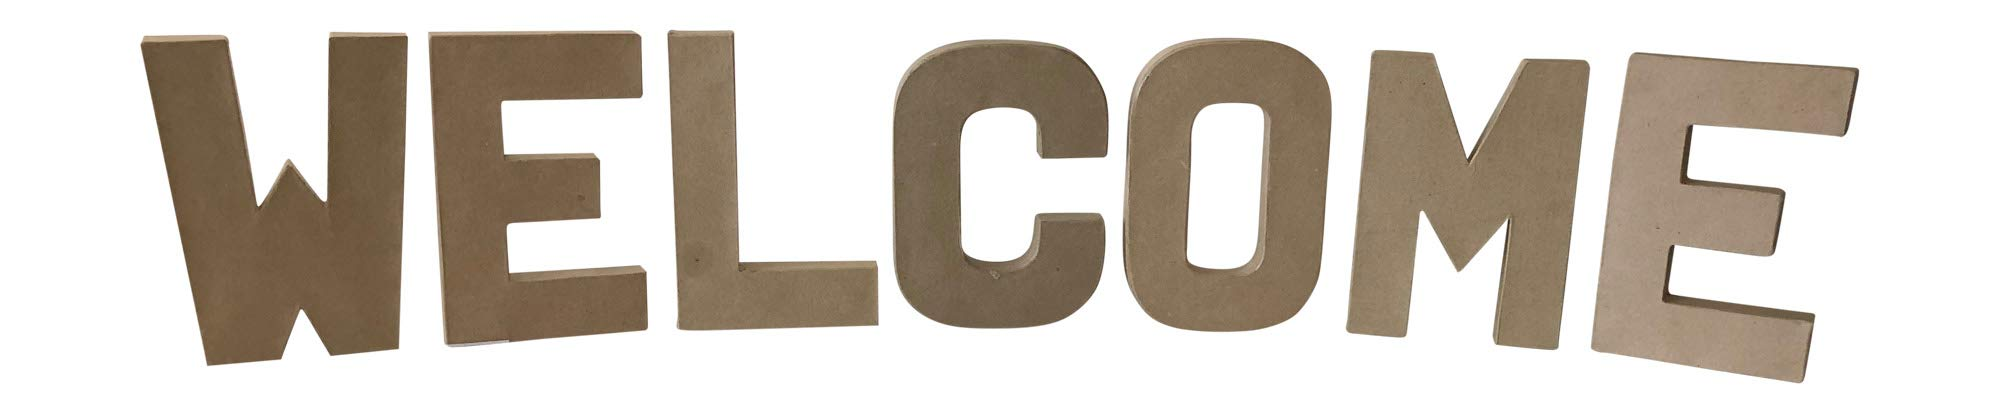 Paper Mache Letters- 8'' x 5.5'' (Welcome) by Generic